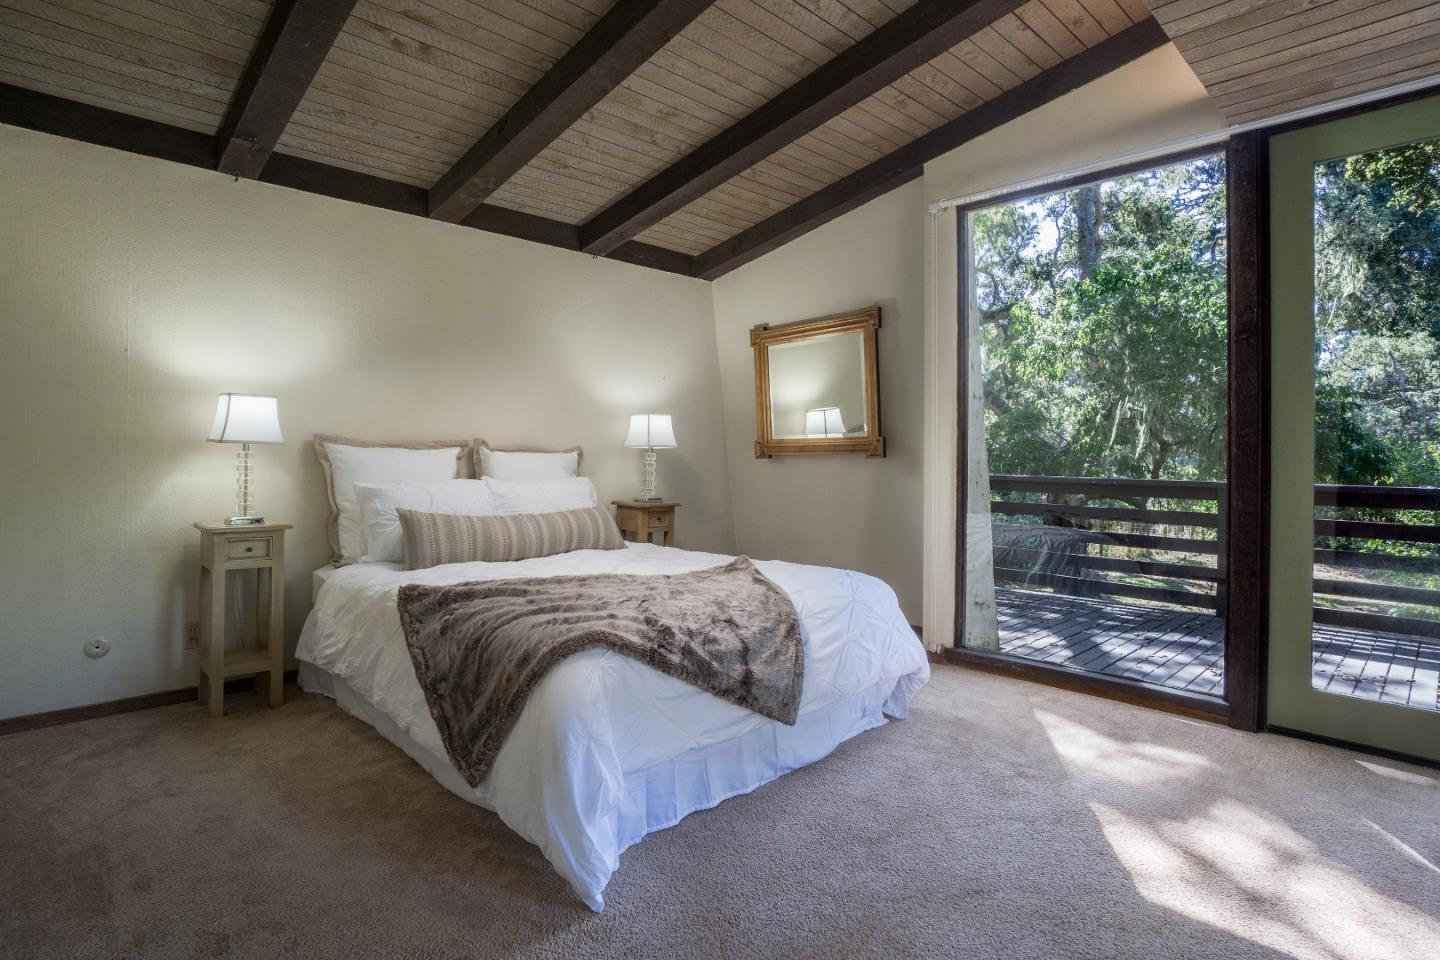 Additional photo for property listing at 2818 Raccoon Trail  Pebble Beach, California 93953 United States